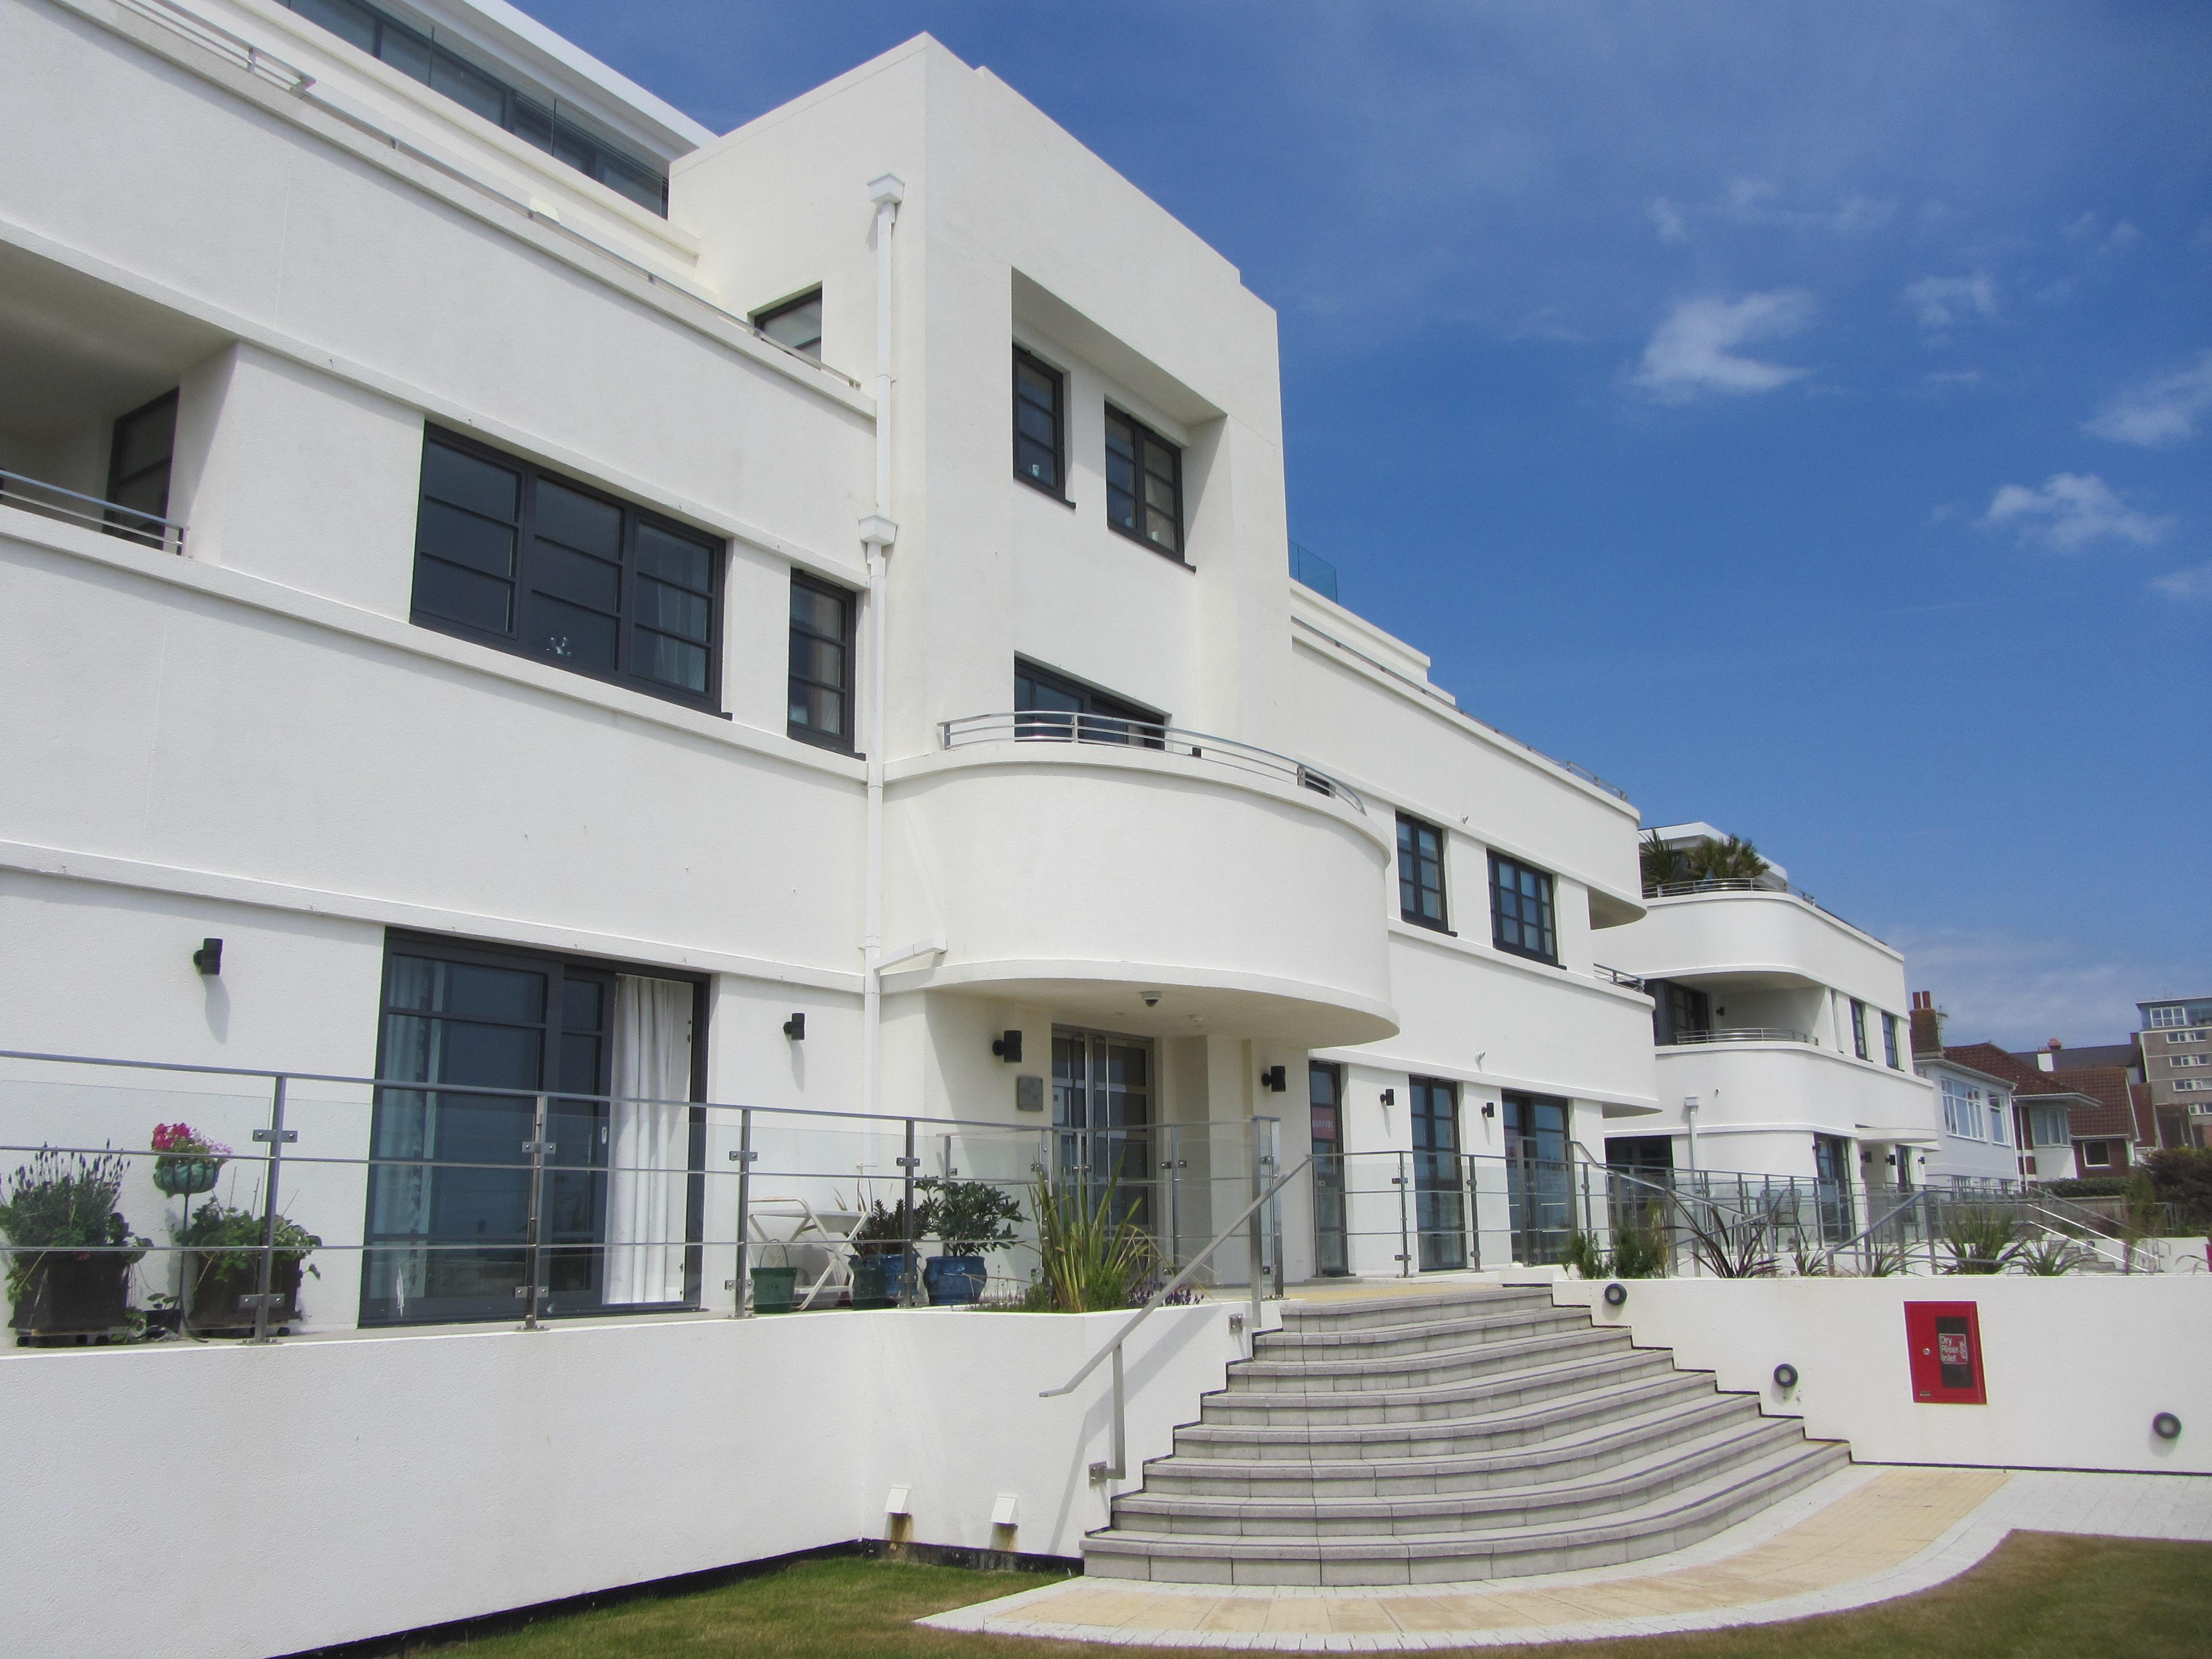 EWI New Build Project, Vista Mare, West Worthing